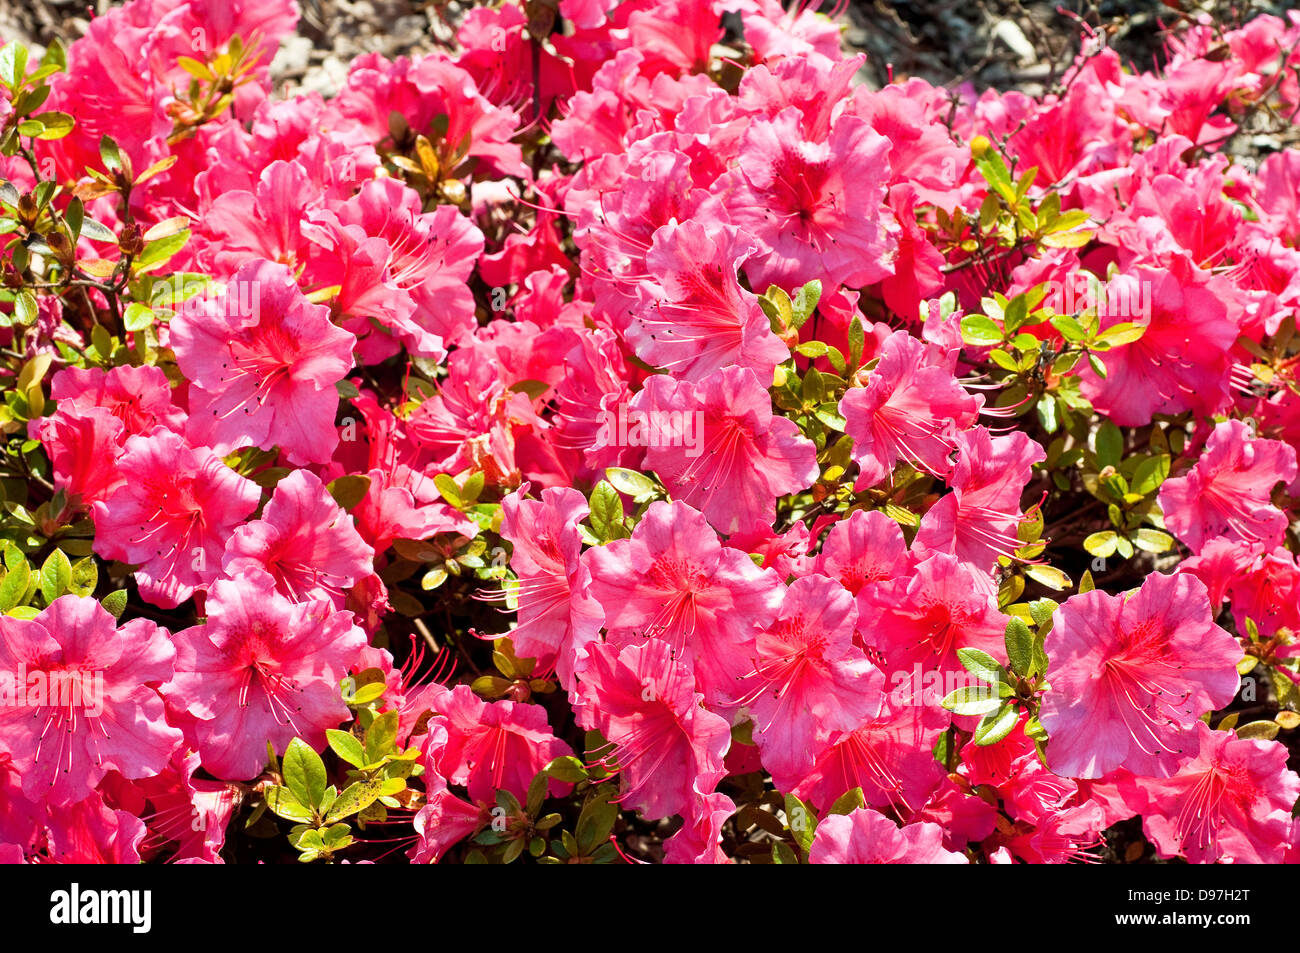 Rhododendron 'Vuyk's Rosyred' - Stock Image